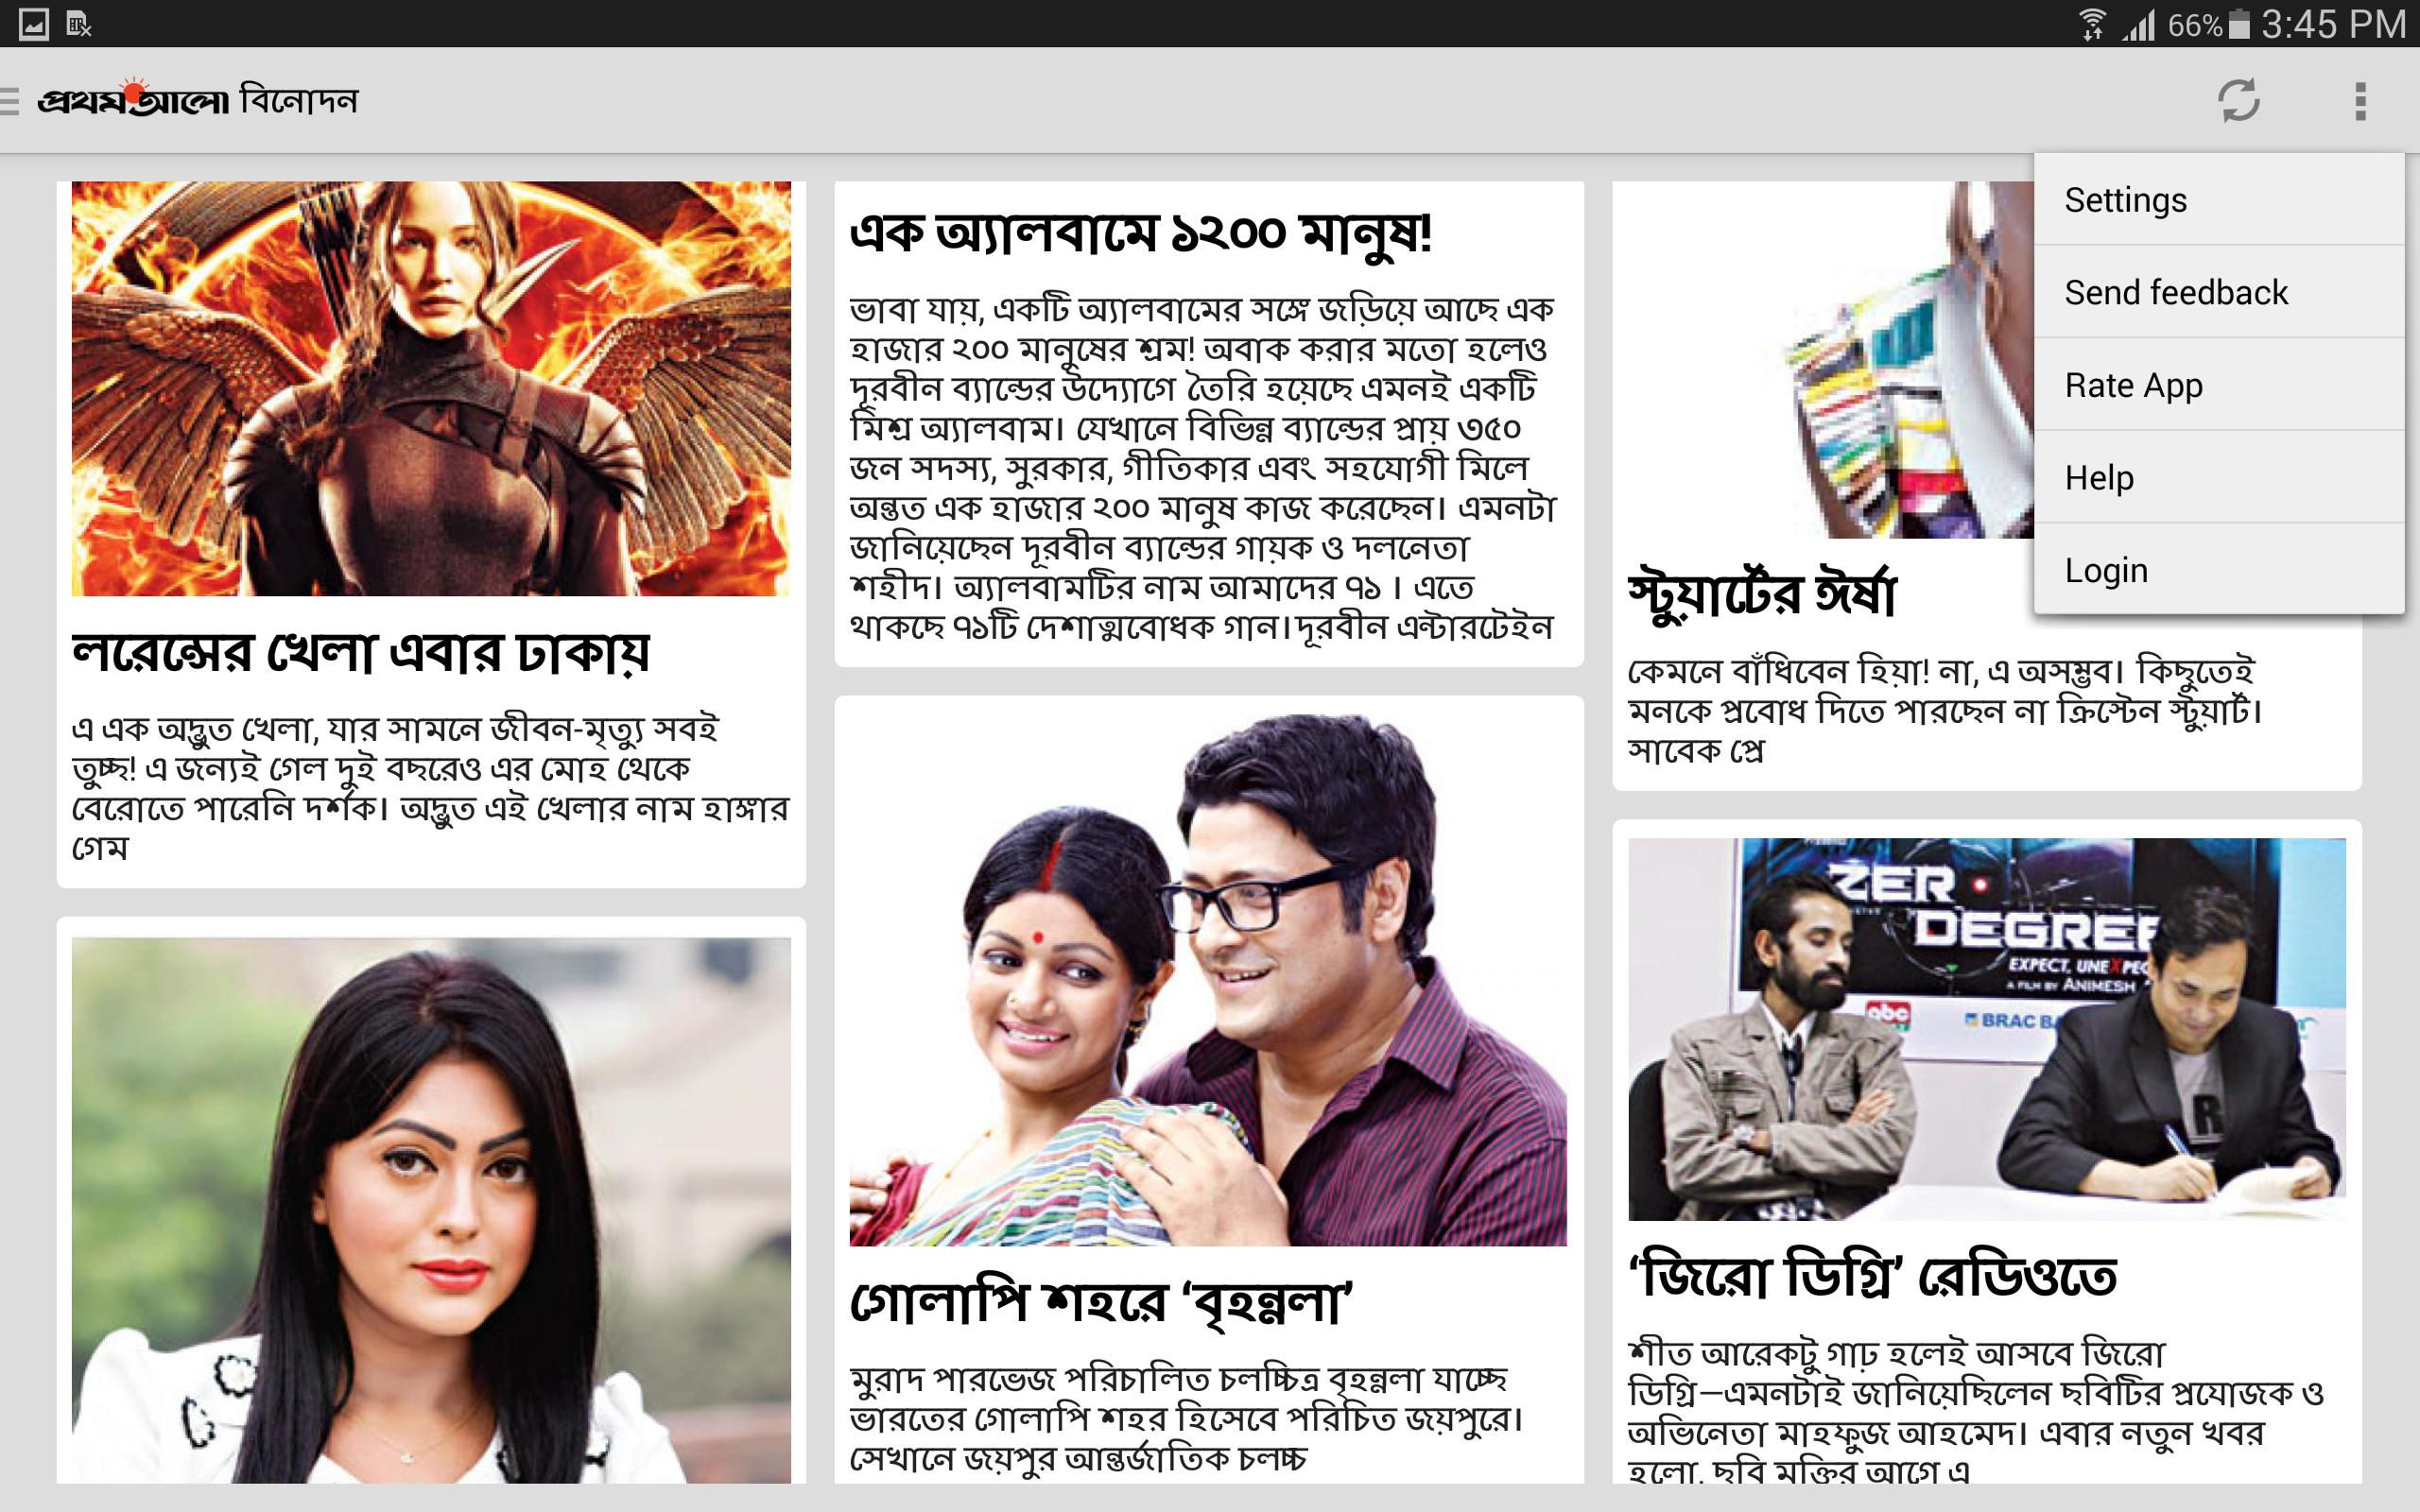 Bangla Newspaper - Prothom Alo for Android - APK Download